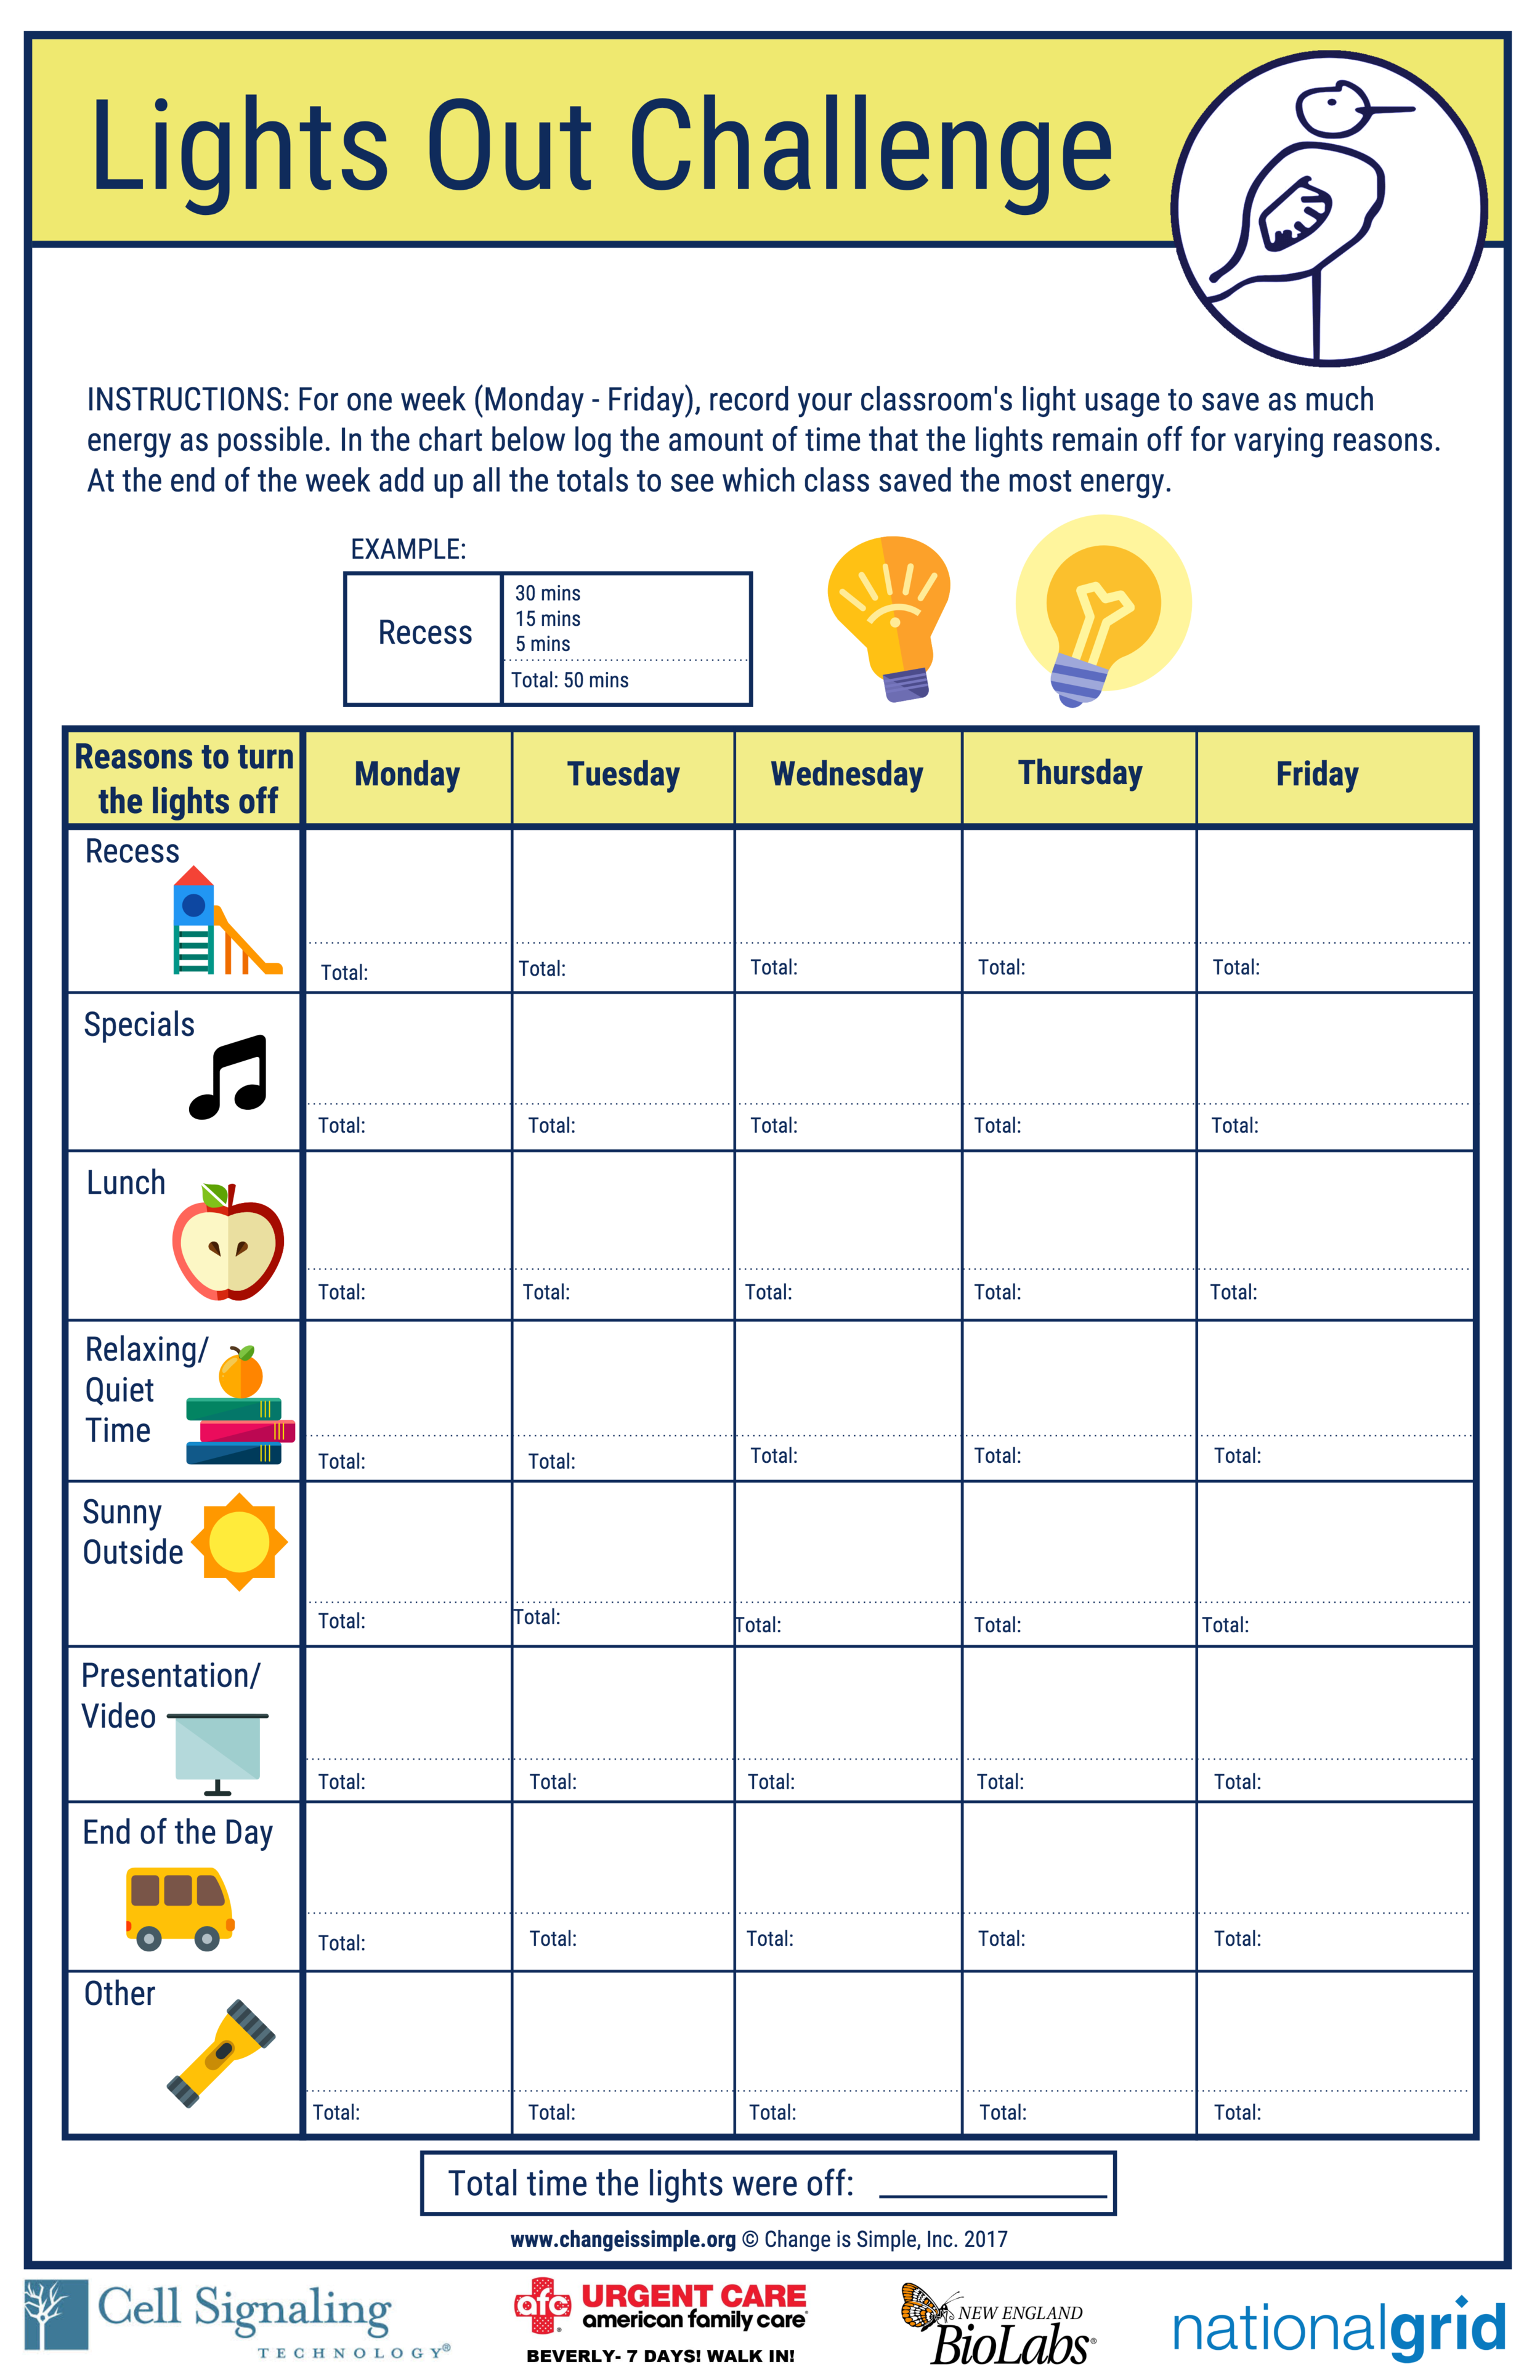 Classroom challenges that unite students in a common goal.